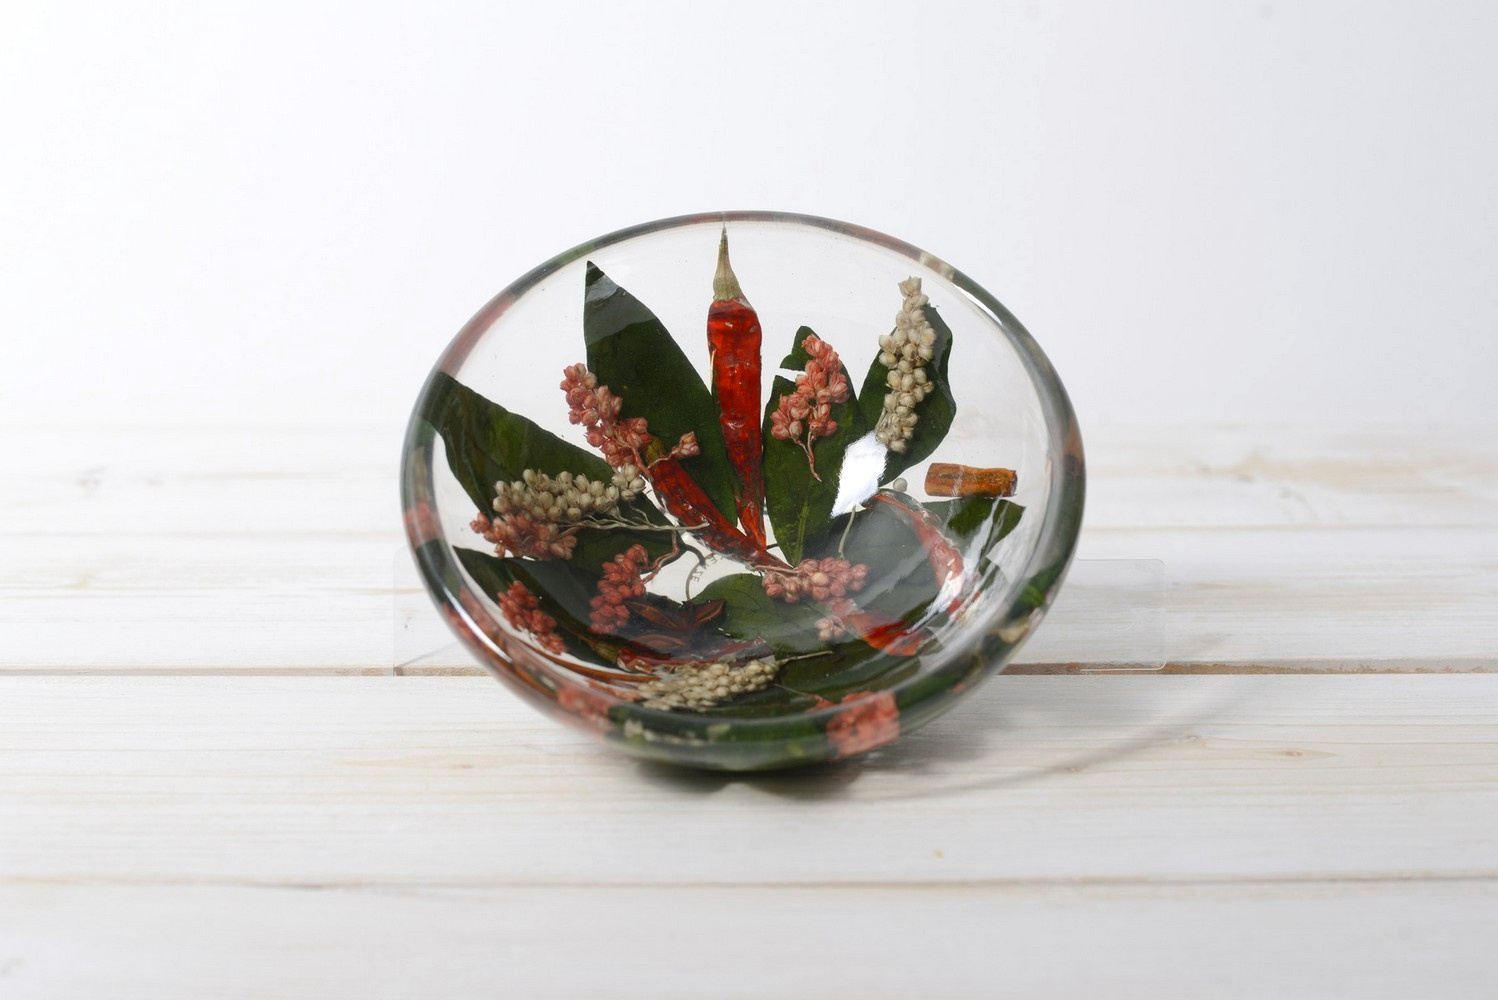 Small Round Bowl Chili Collection diam cm 14 h6